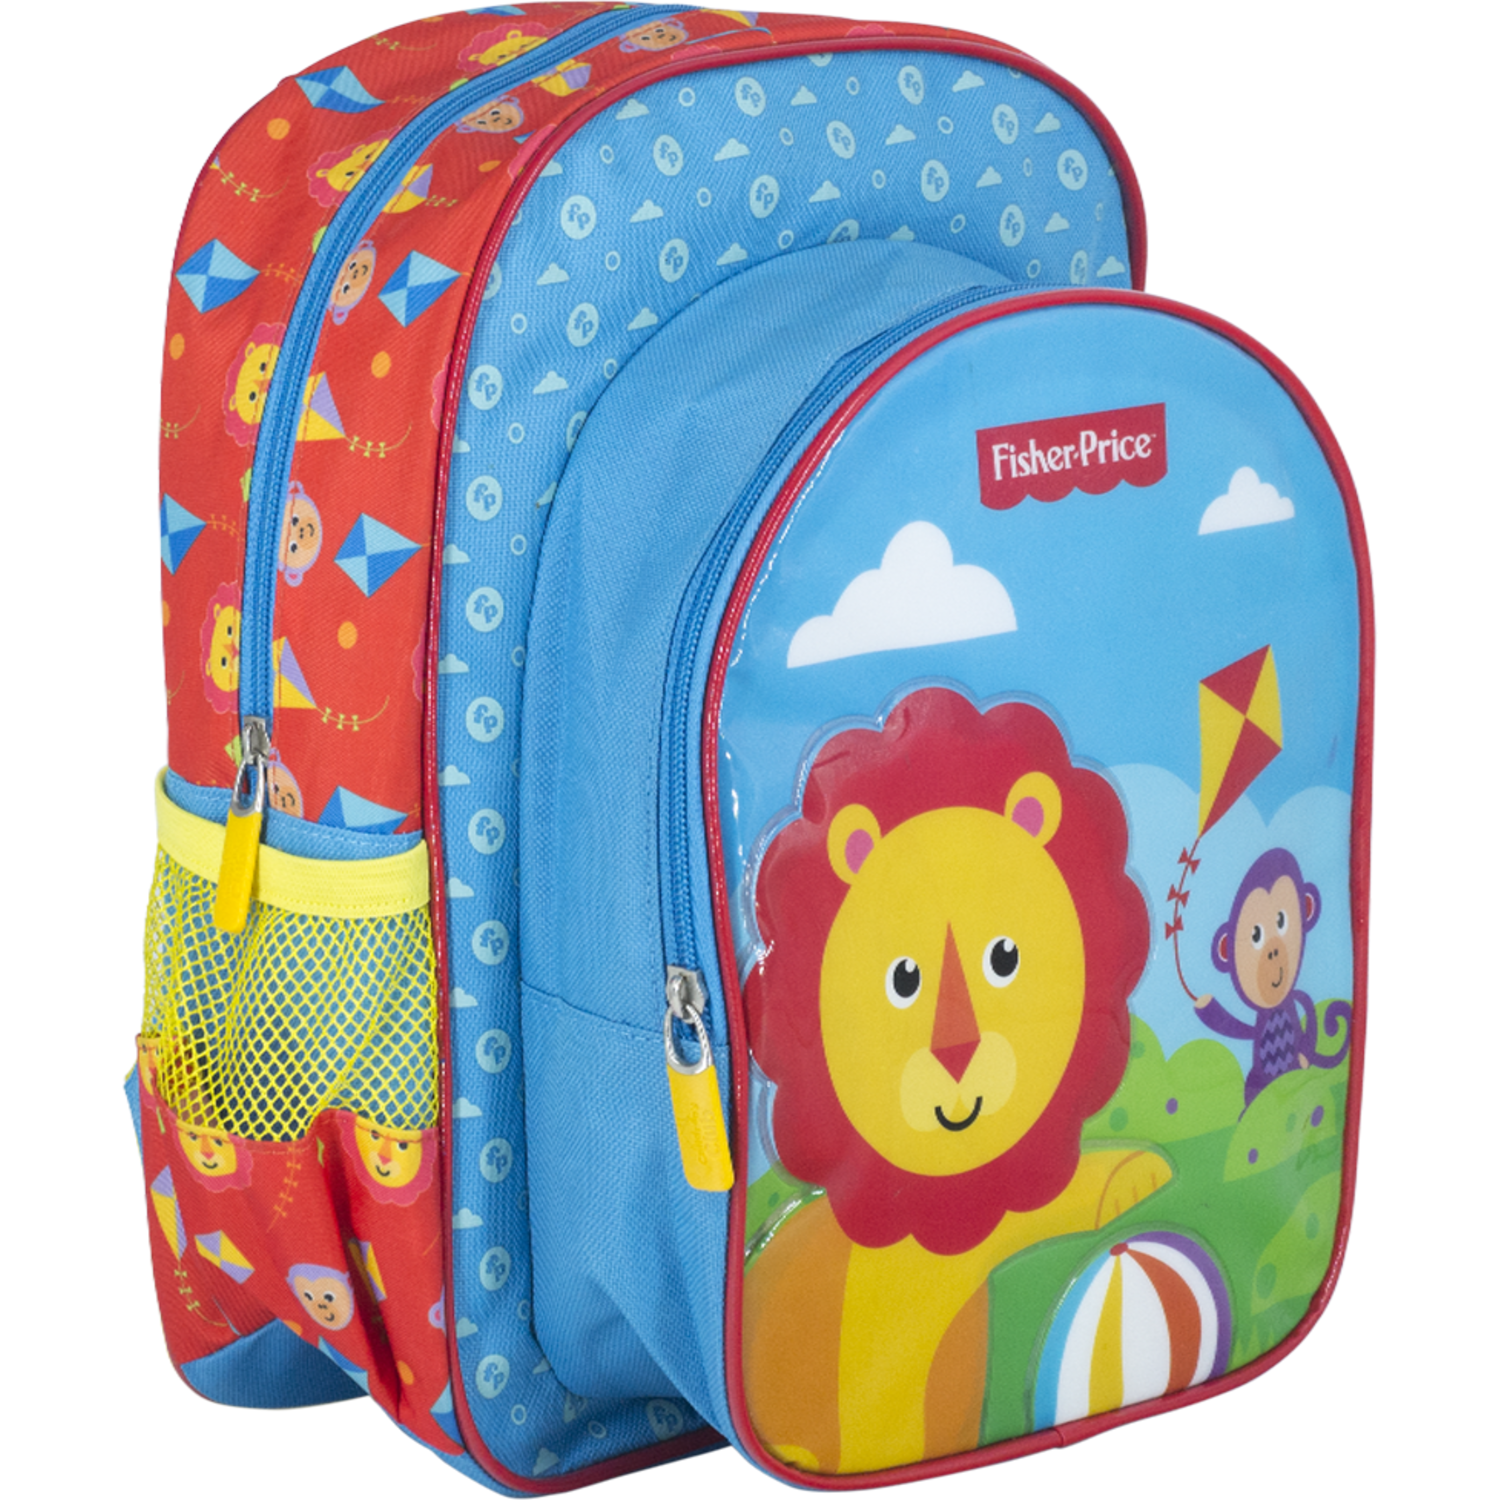 Fisher Price minimochila snacker fisher price Celeste mochilas